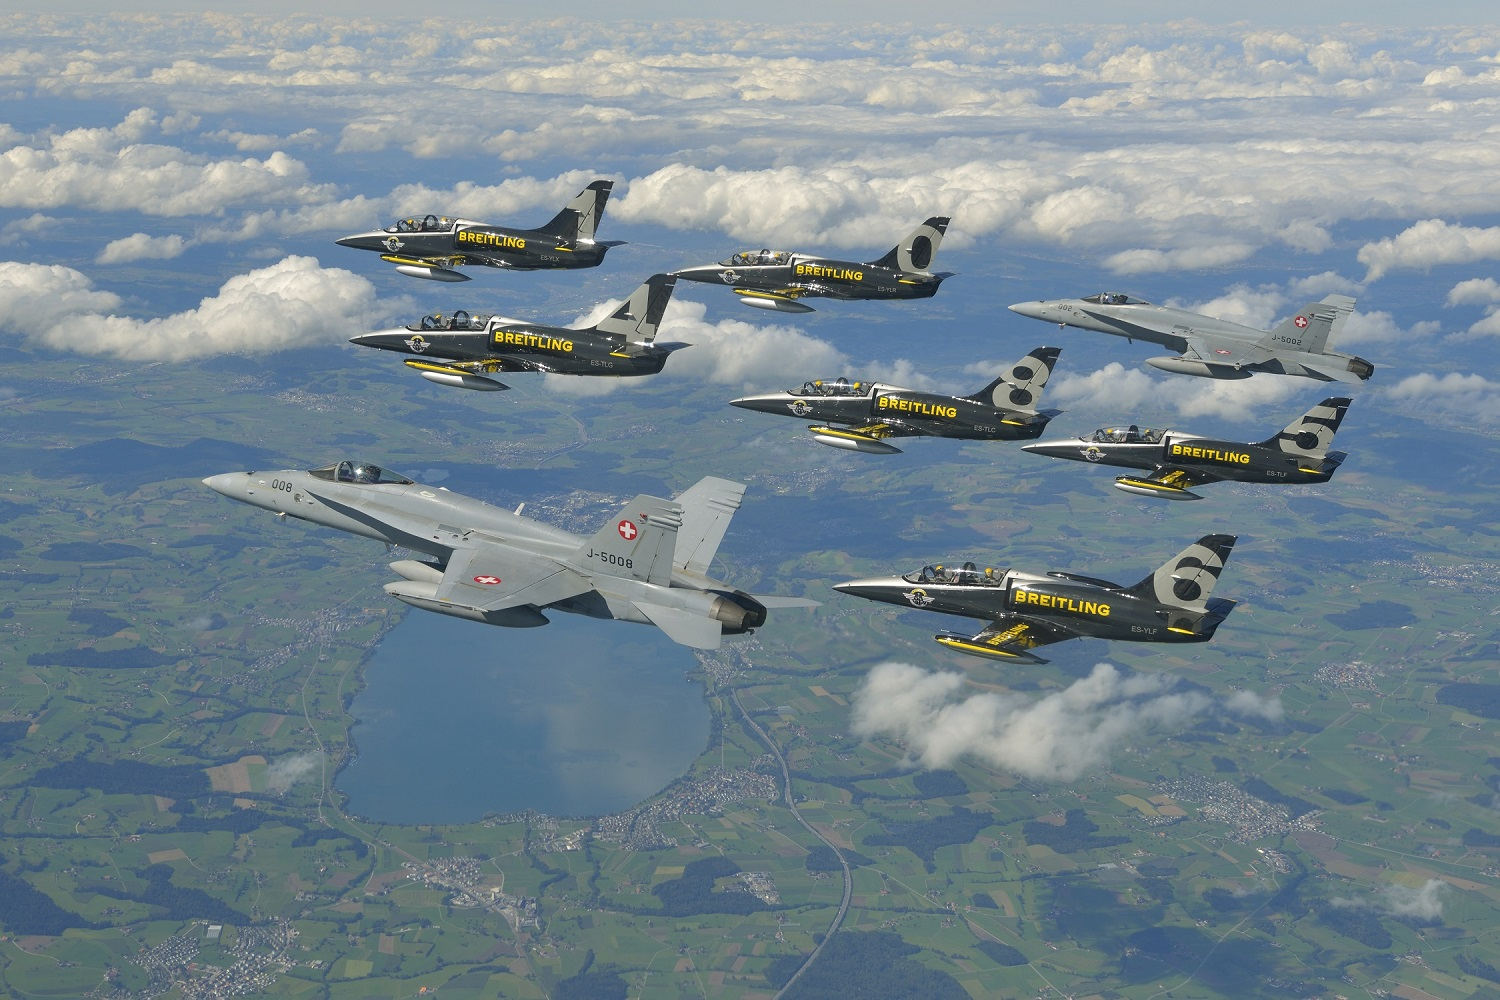 Breitling Jet Team with Swiss Air Force F/A-18 ( Image Credit Breitling SA).